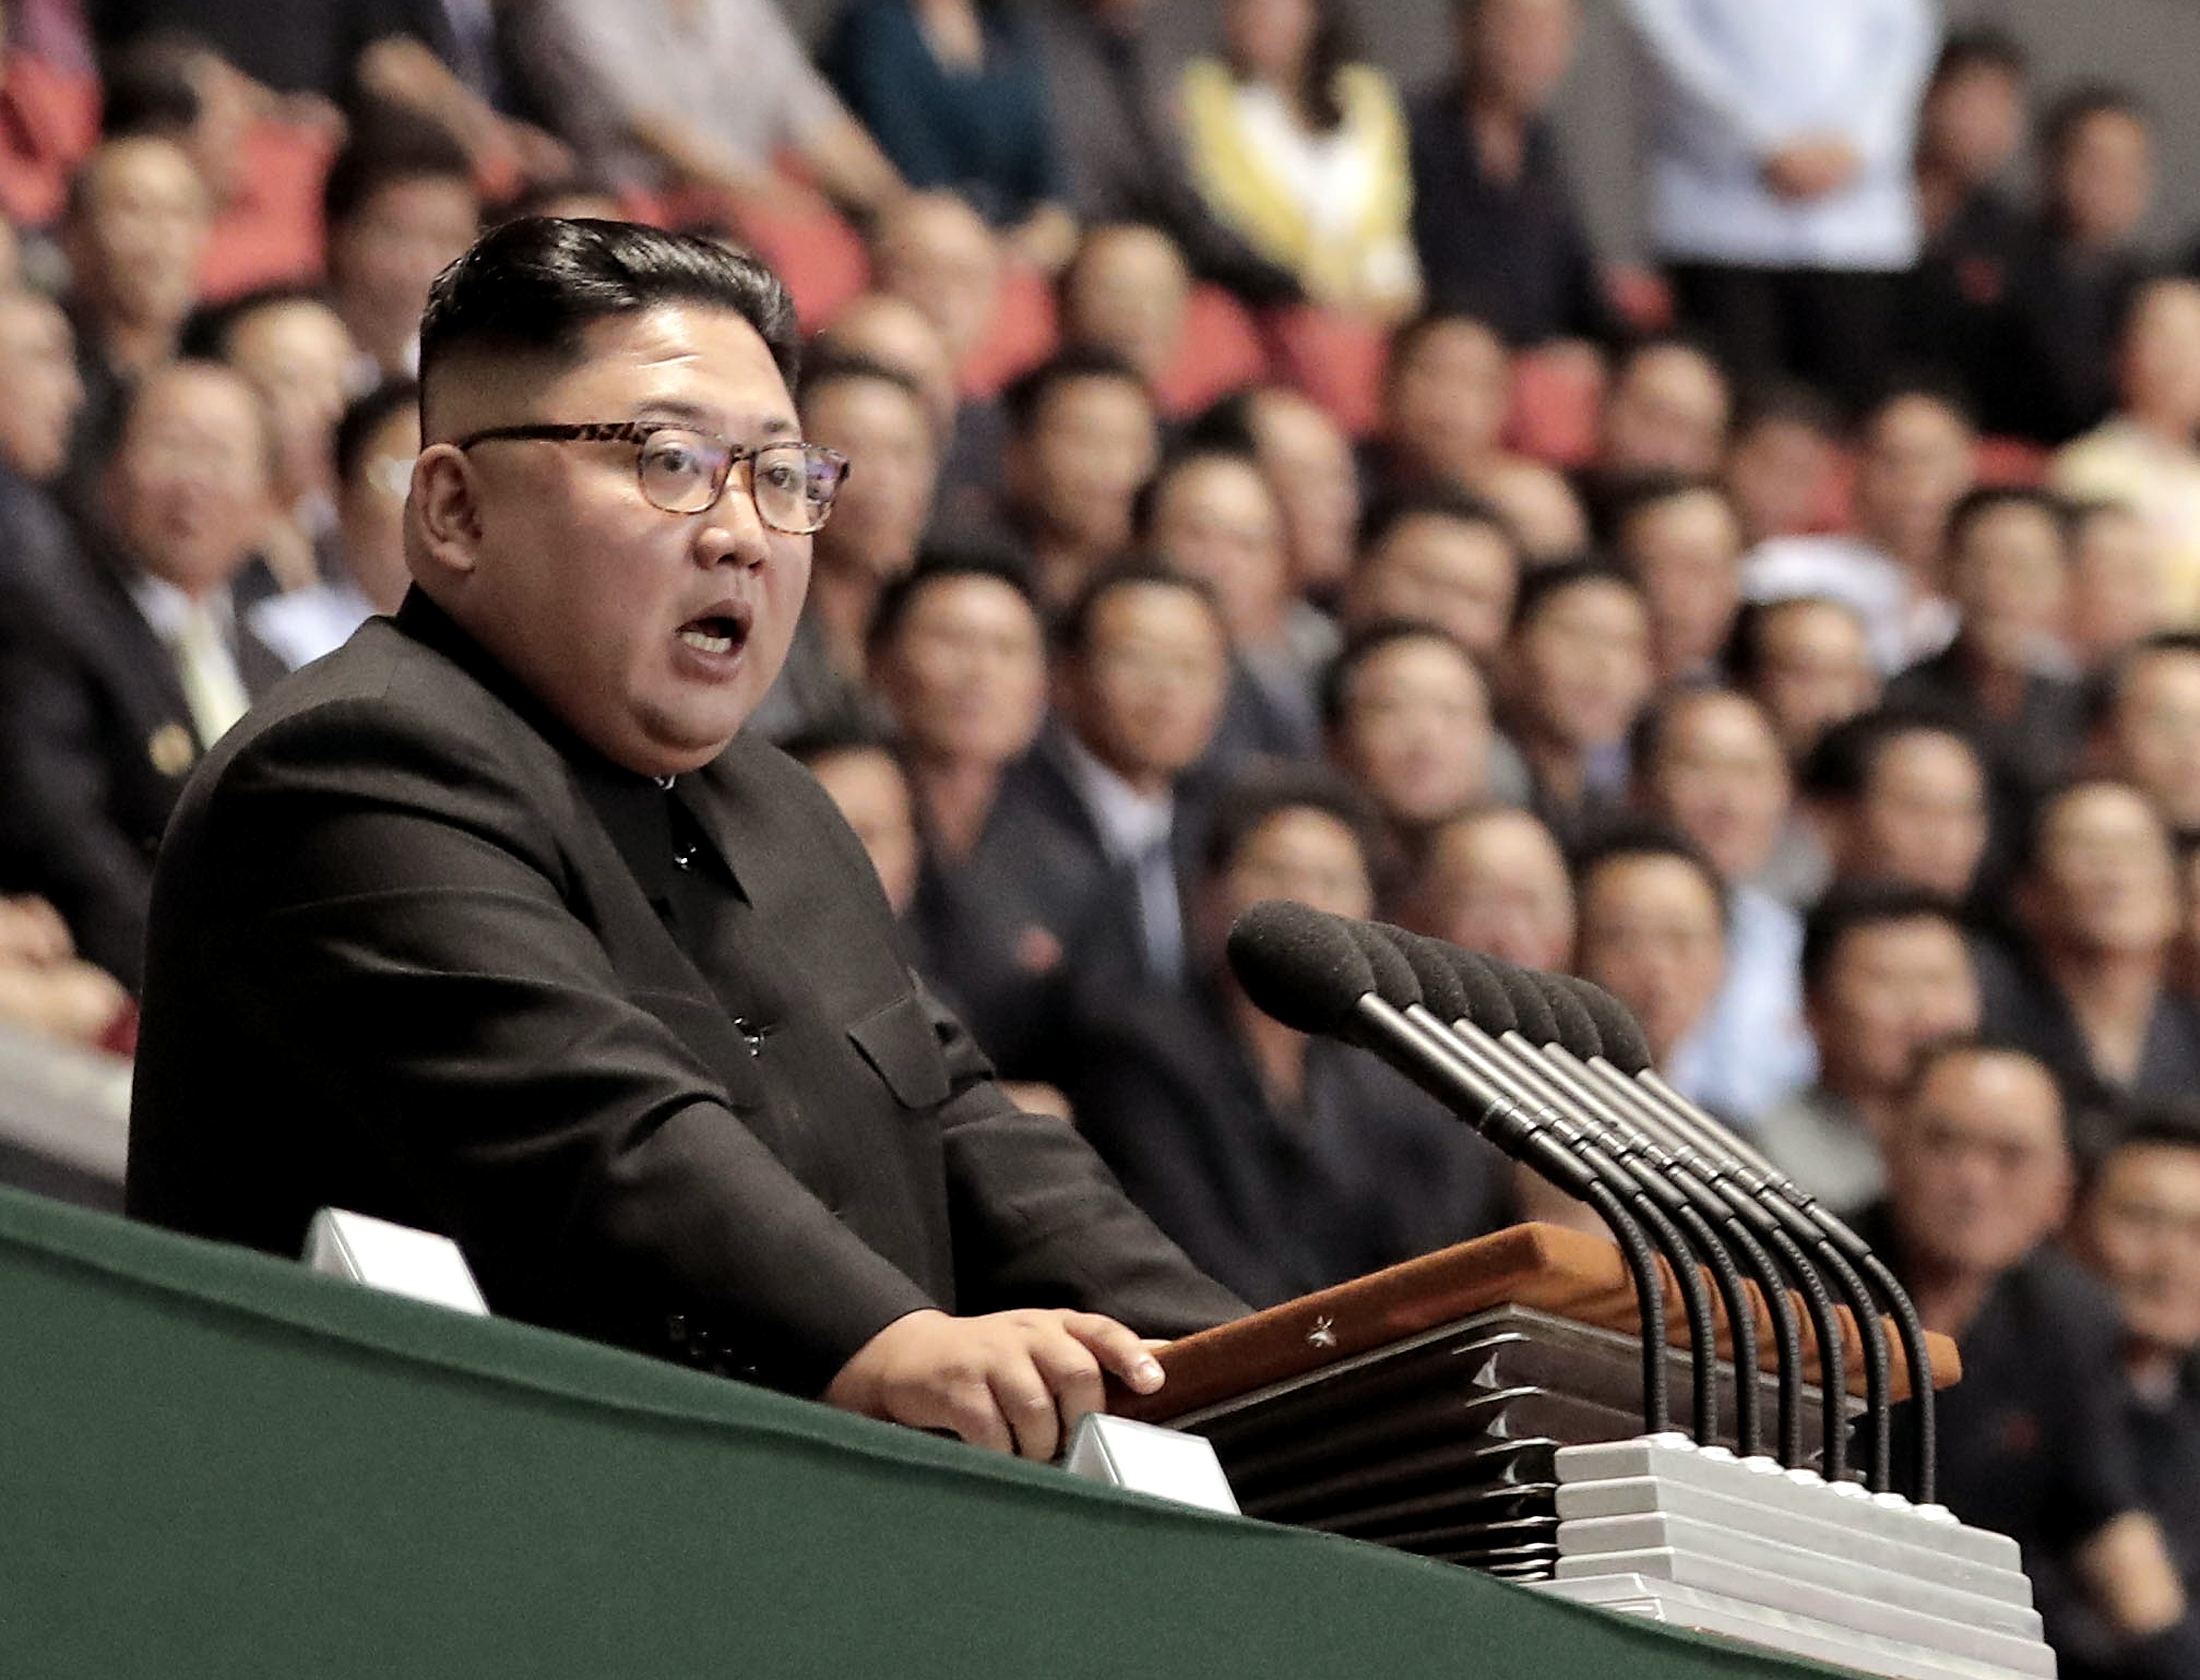 The US wants to set up a liaison office in North Korea